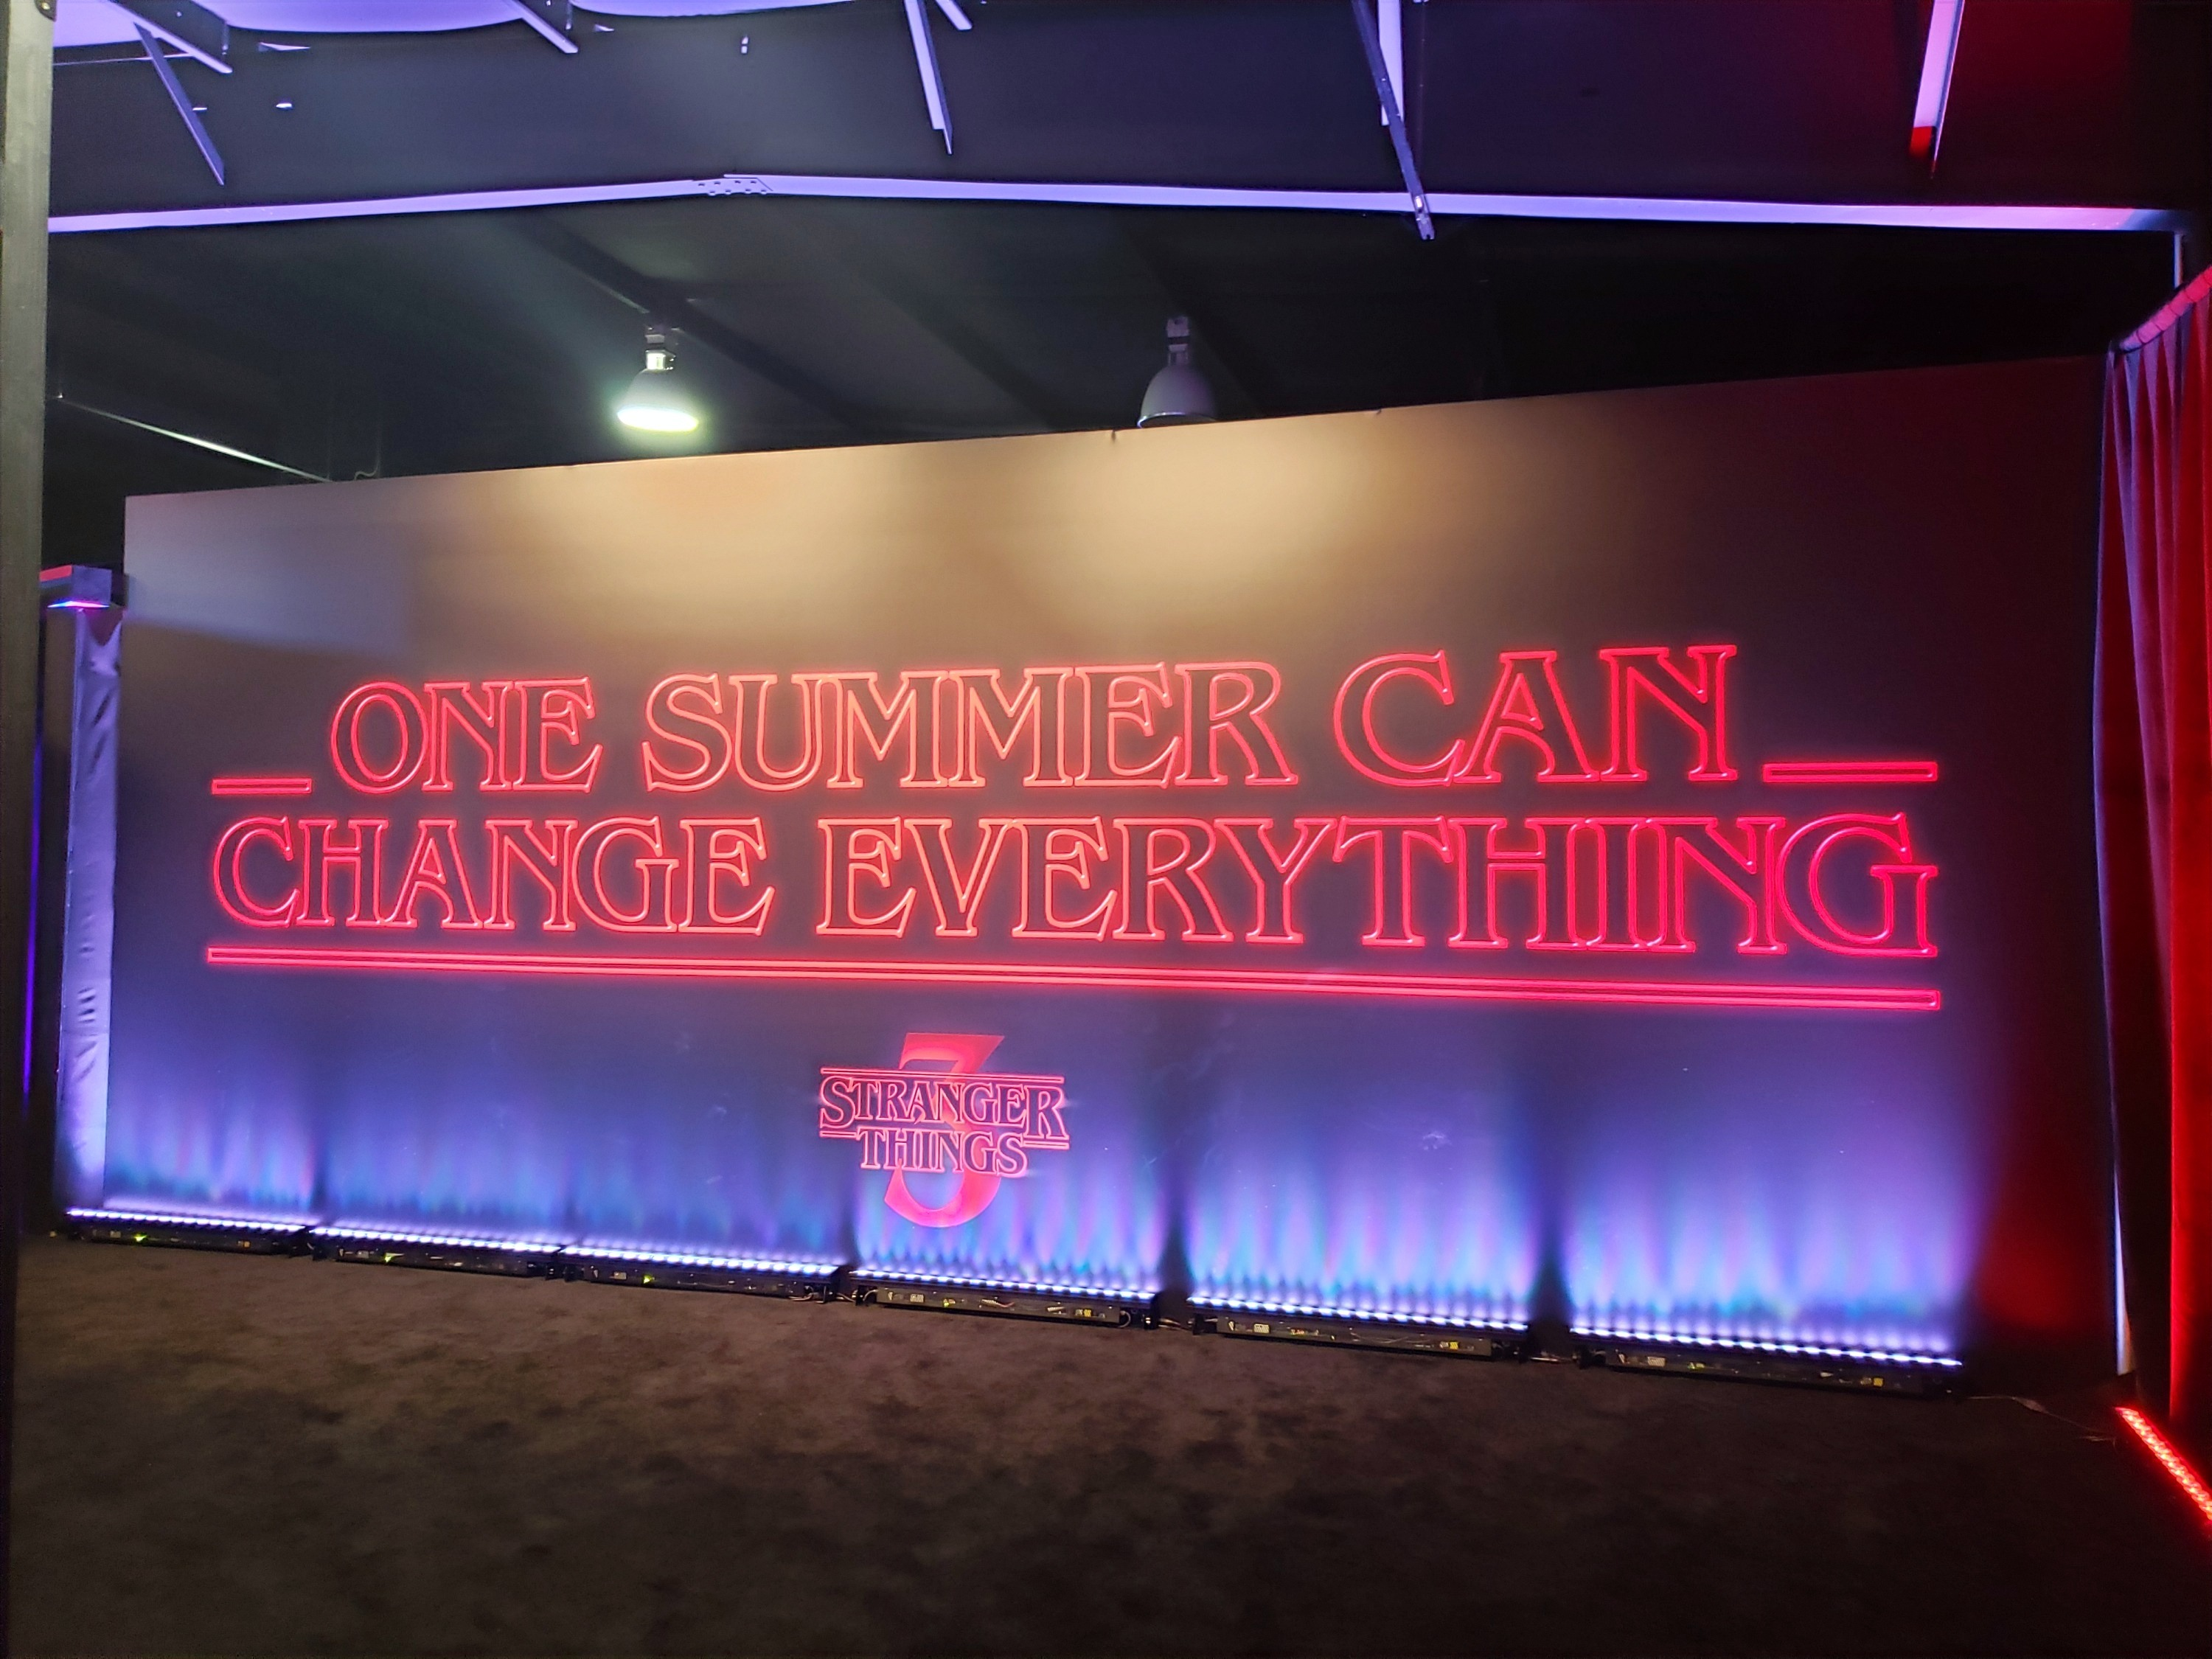 Stranger Things 3 release activation